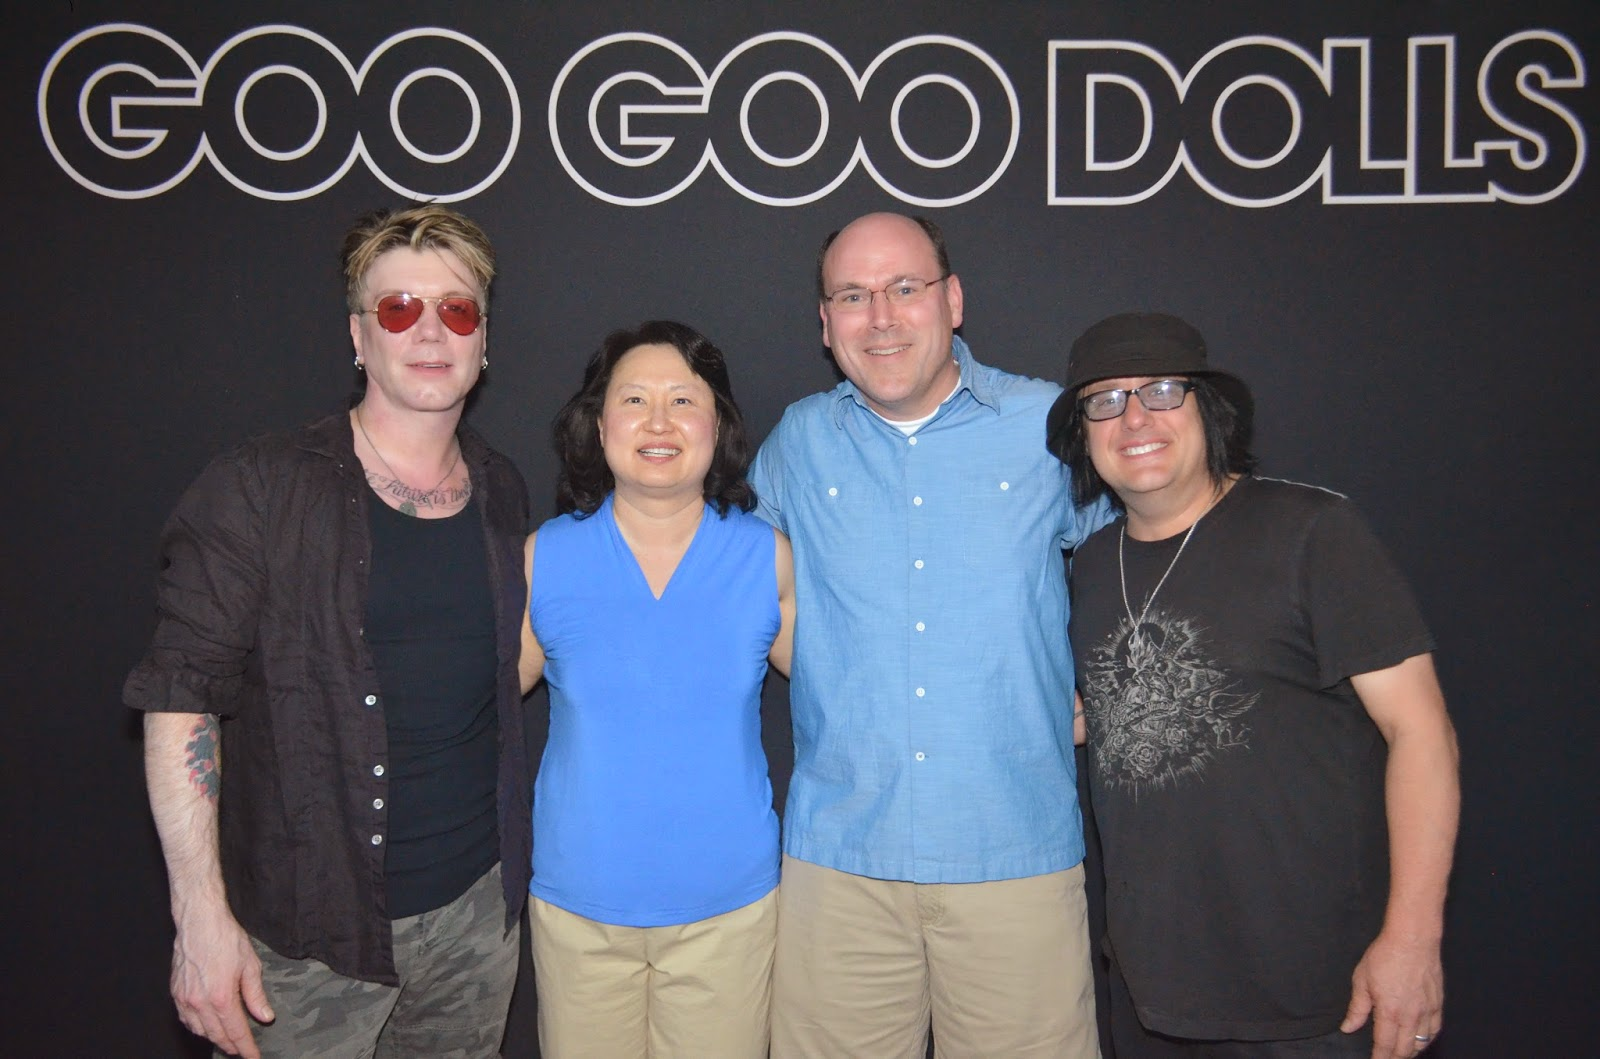 Dr Rocks Music Adventures The Goo Goo Dolls Daughtry And The